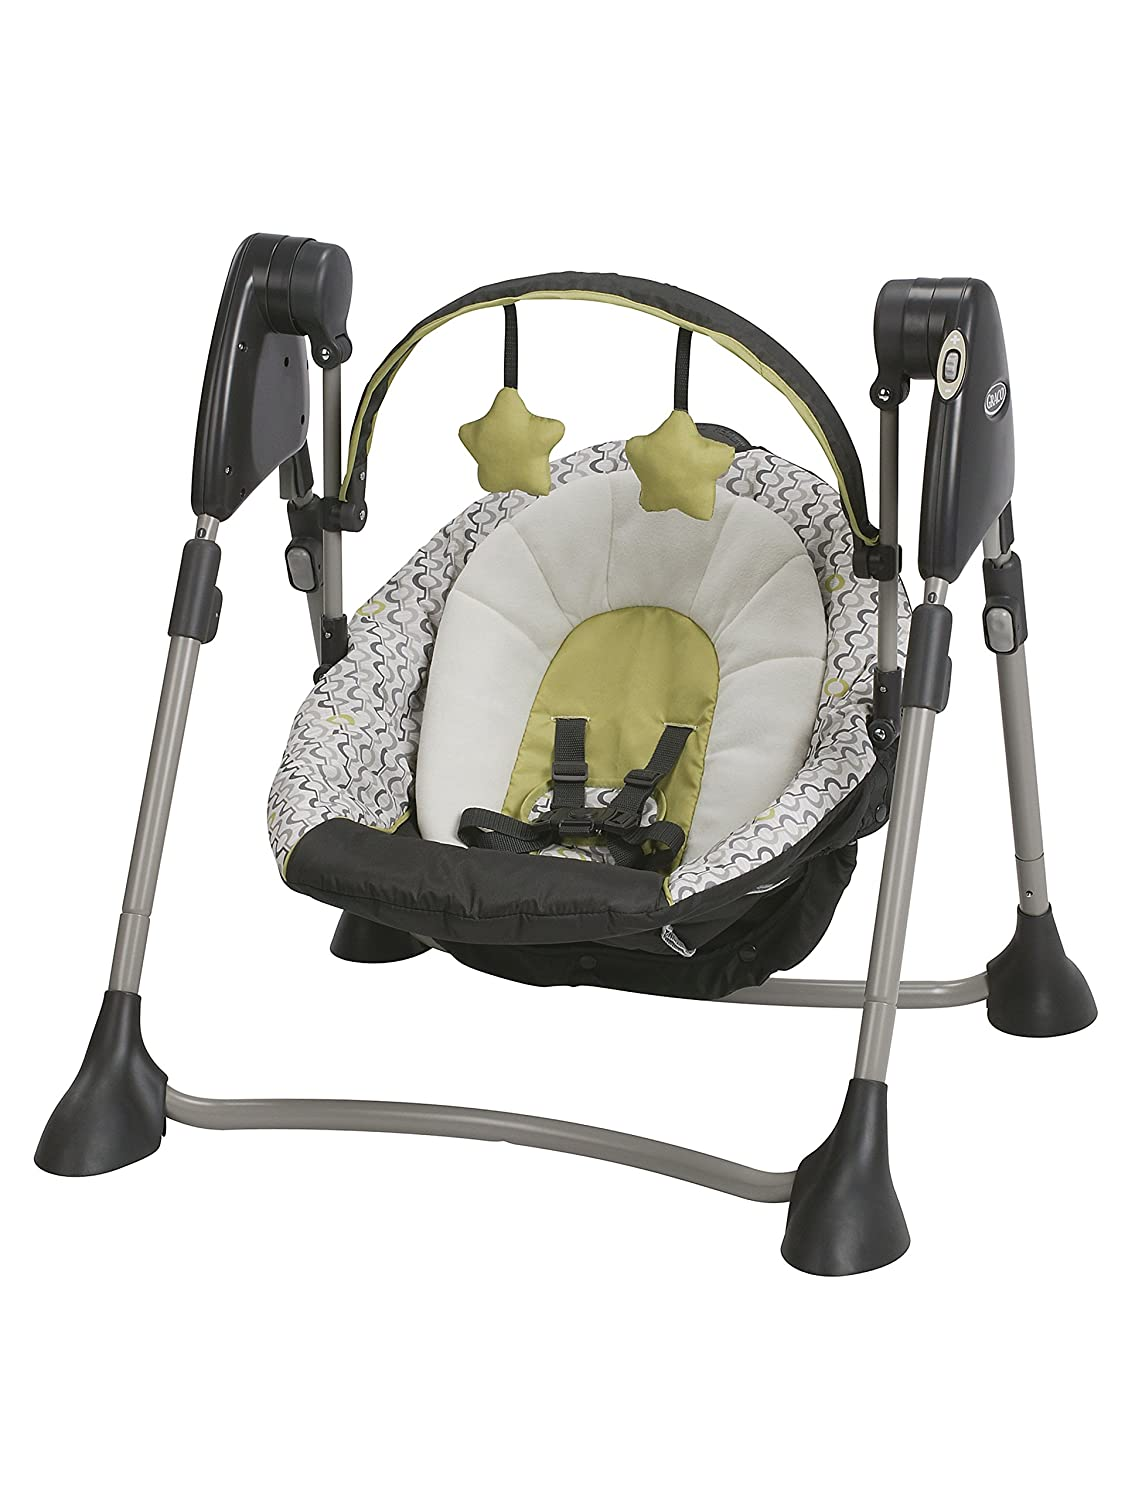 Graco Swing by Me Portable 2-in-1 Swing San Marino, Charcoal, Yellow 1930008